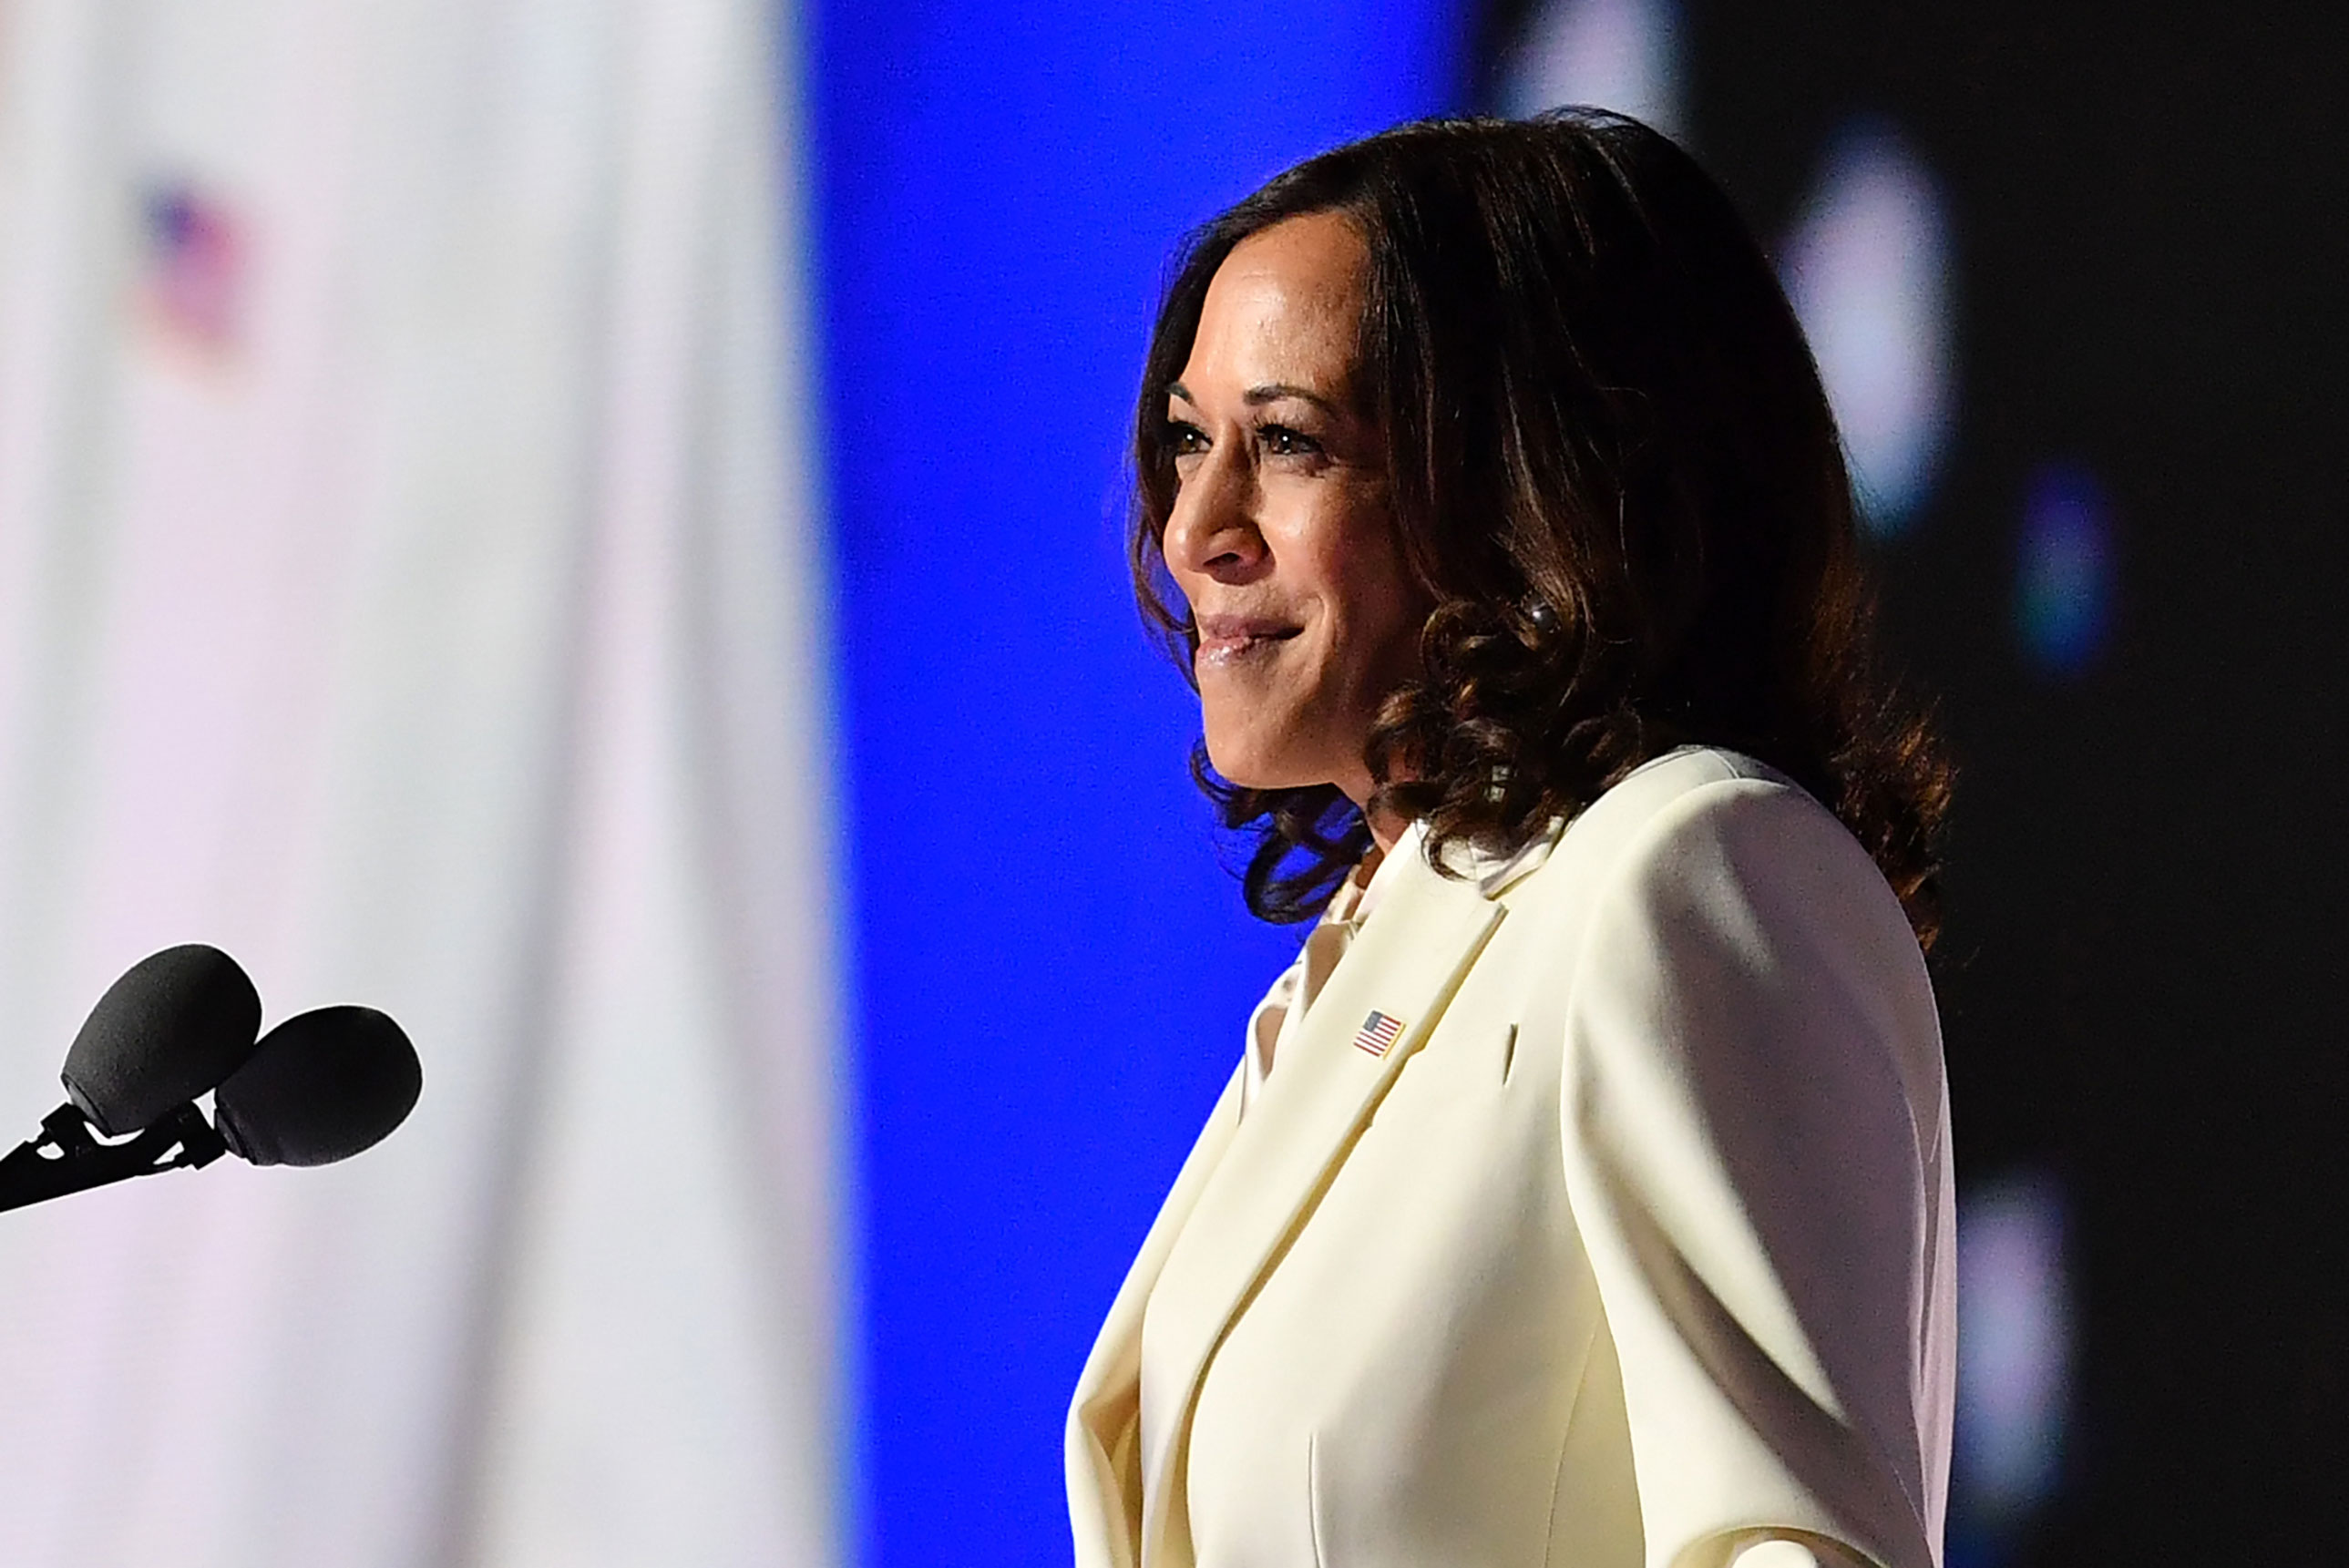 Vice President-elect Kamala Harris delivers remarks in Wilmington, Delaware, on November 7.